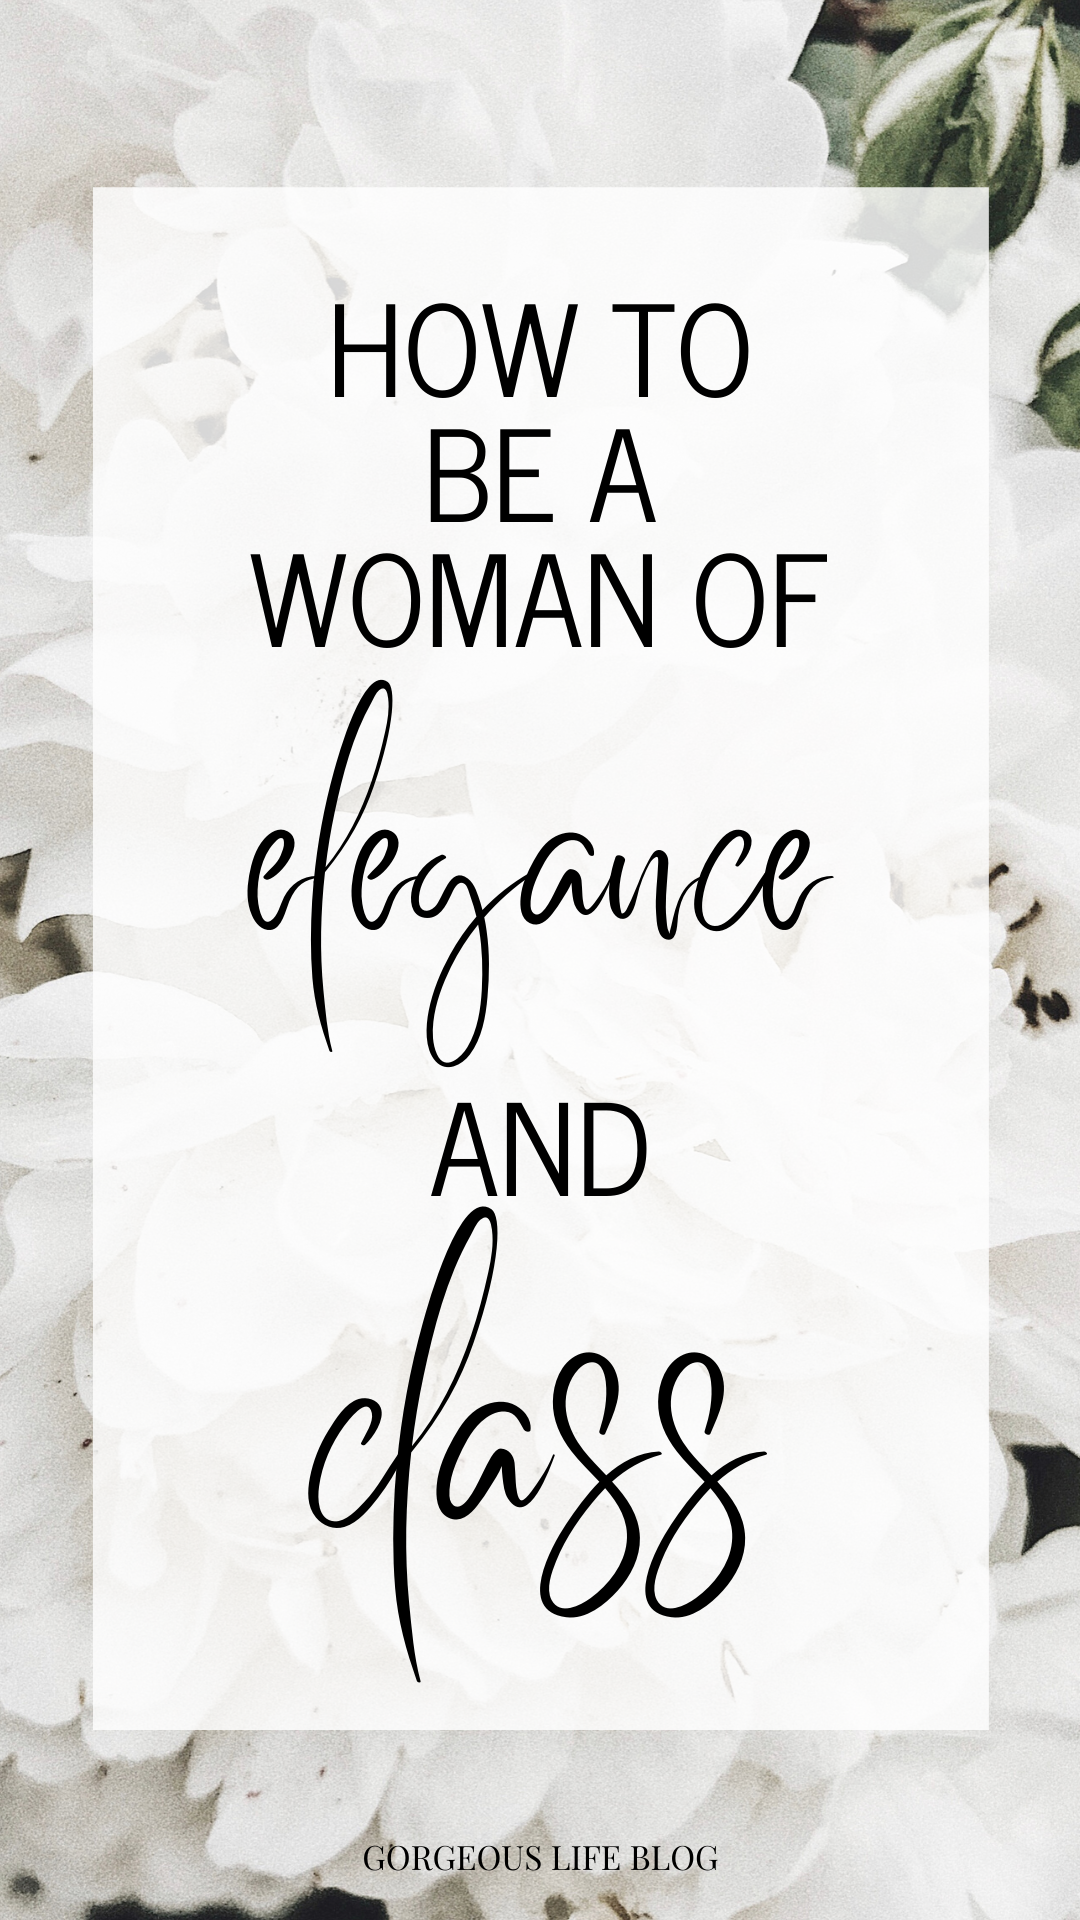 How to be a classy, elegant, modern goddess. How to be classy. How to be a classy woman. How to be an elegant woman. #elegantwomen #classywomen #classy